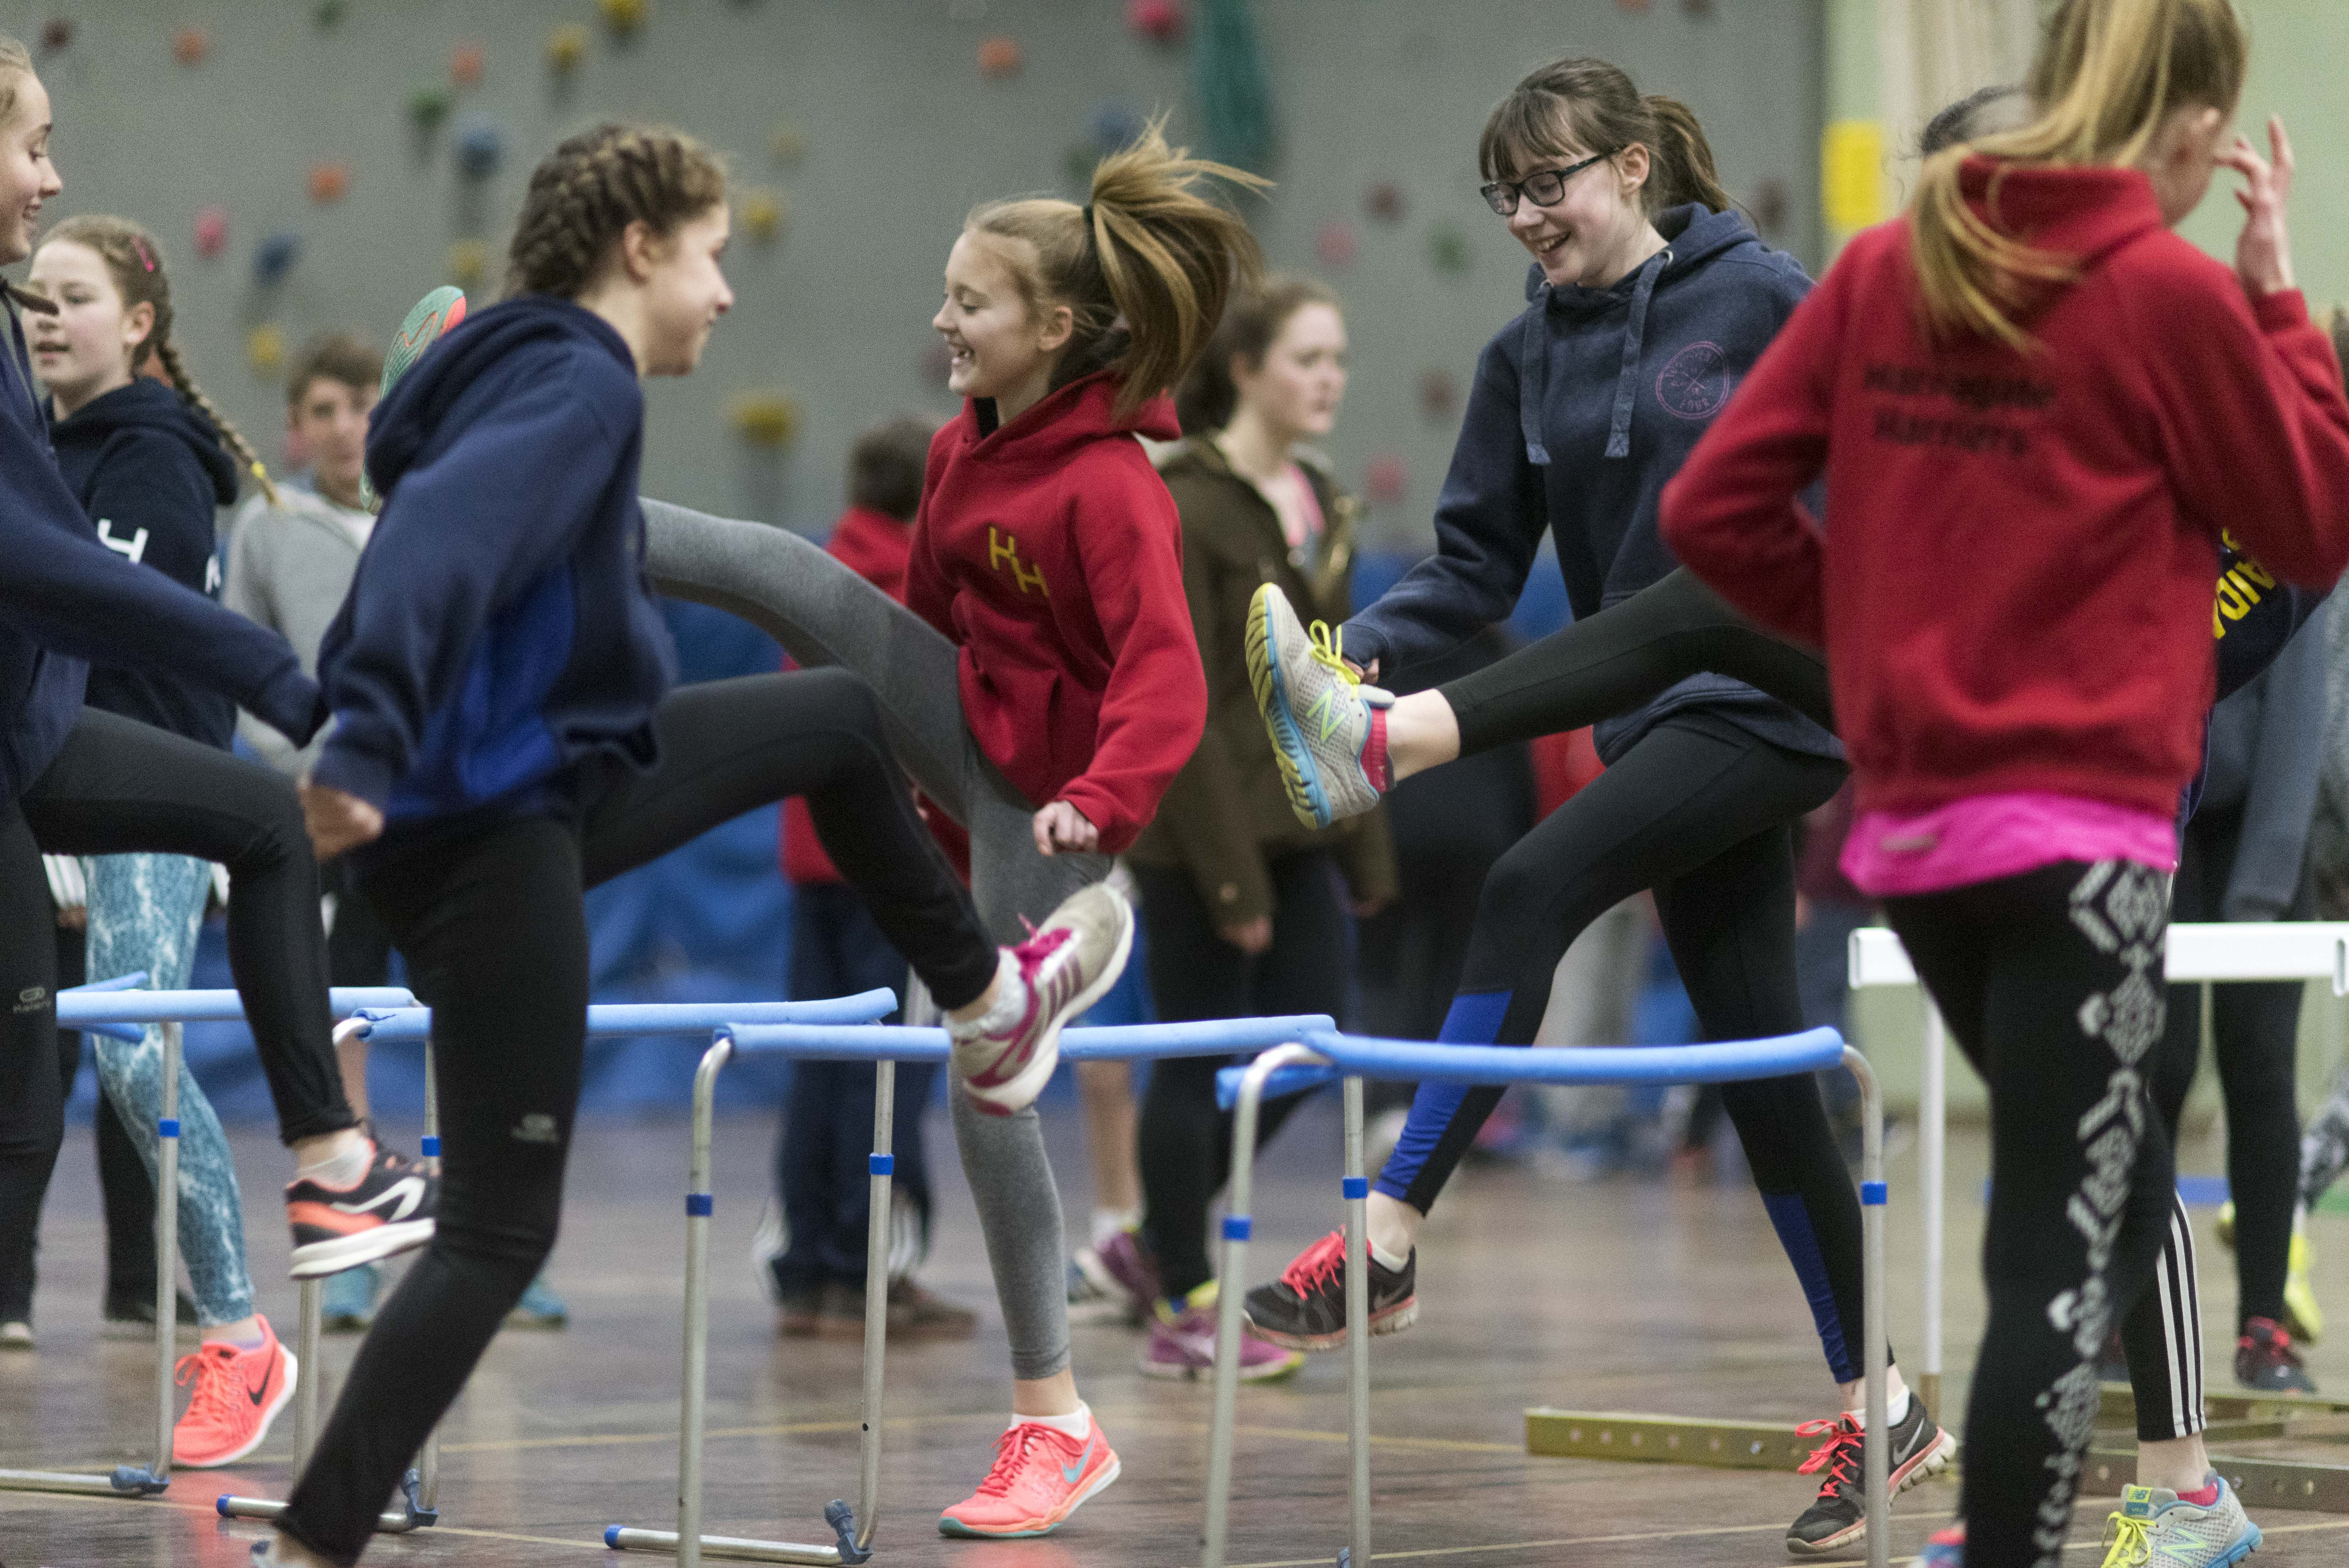 Juniors Membership Basic Skills In Relay Race Initial Training For Younger Children Aged Typically School Years 5 7 Is Often Held Indoors And Concentrates Upon Developing Their Confidence